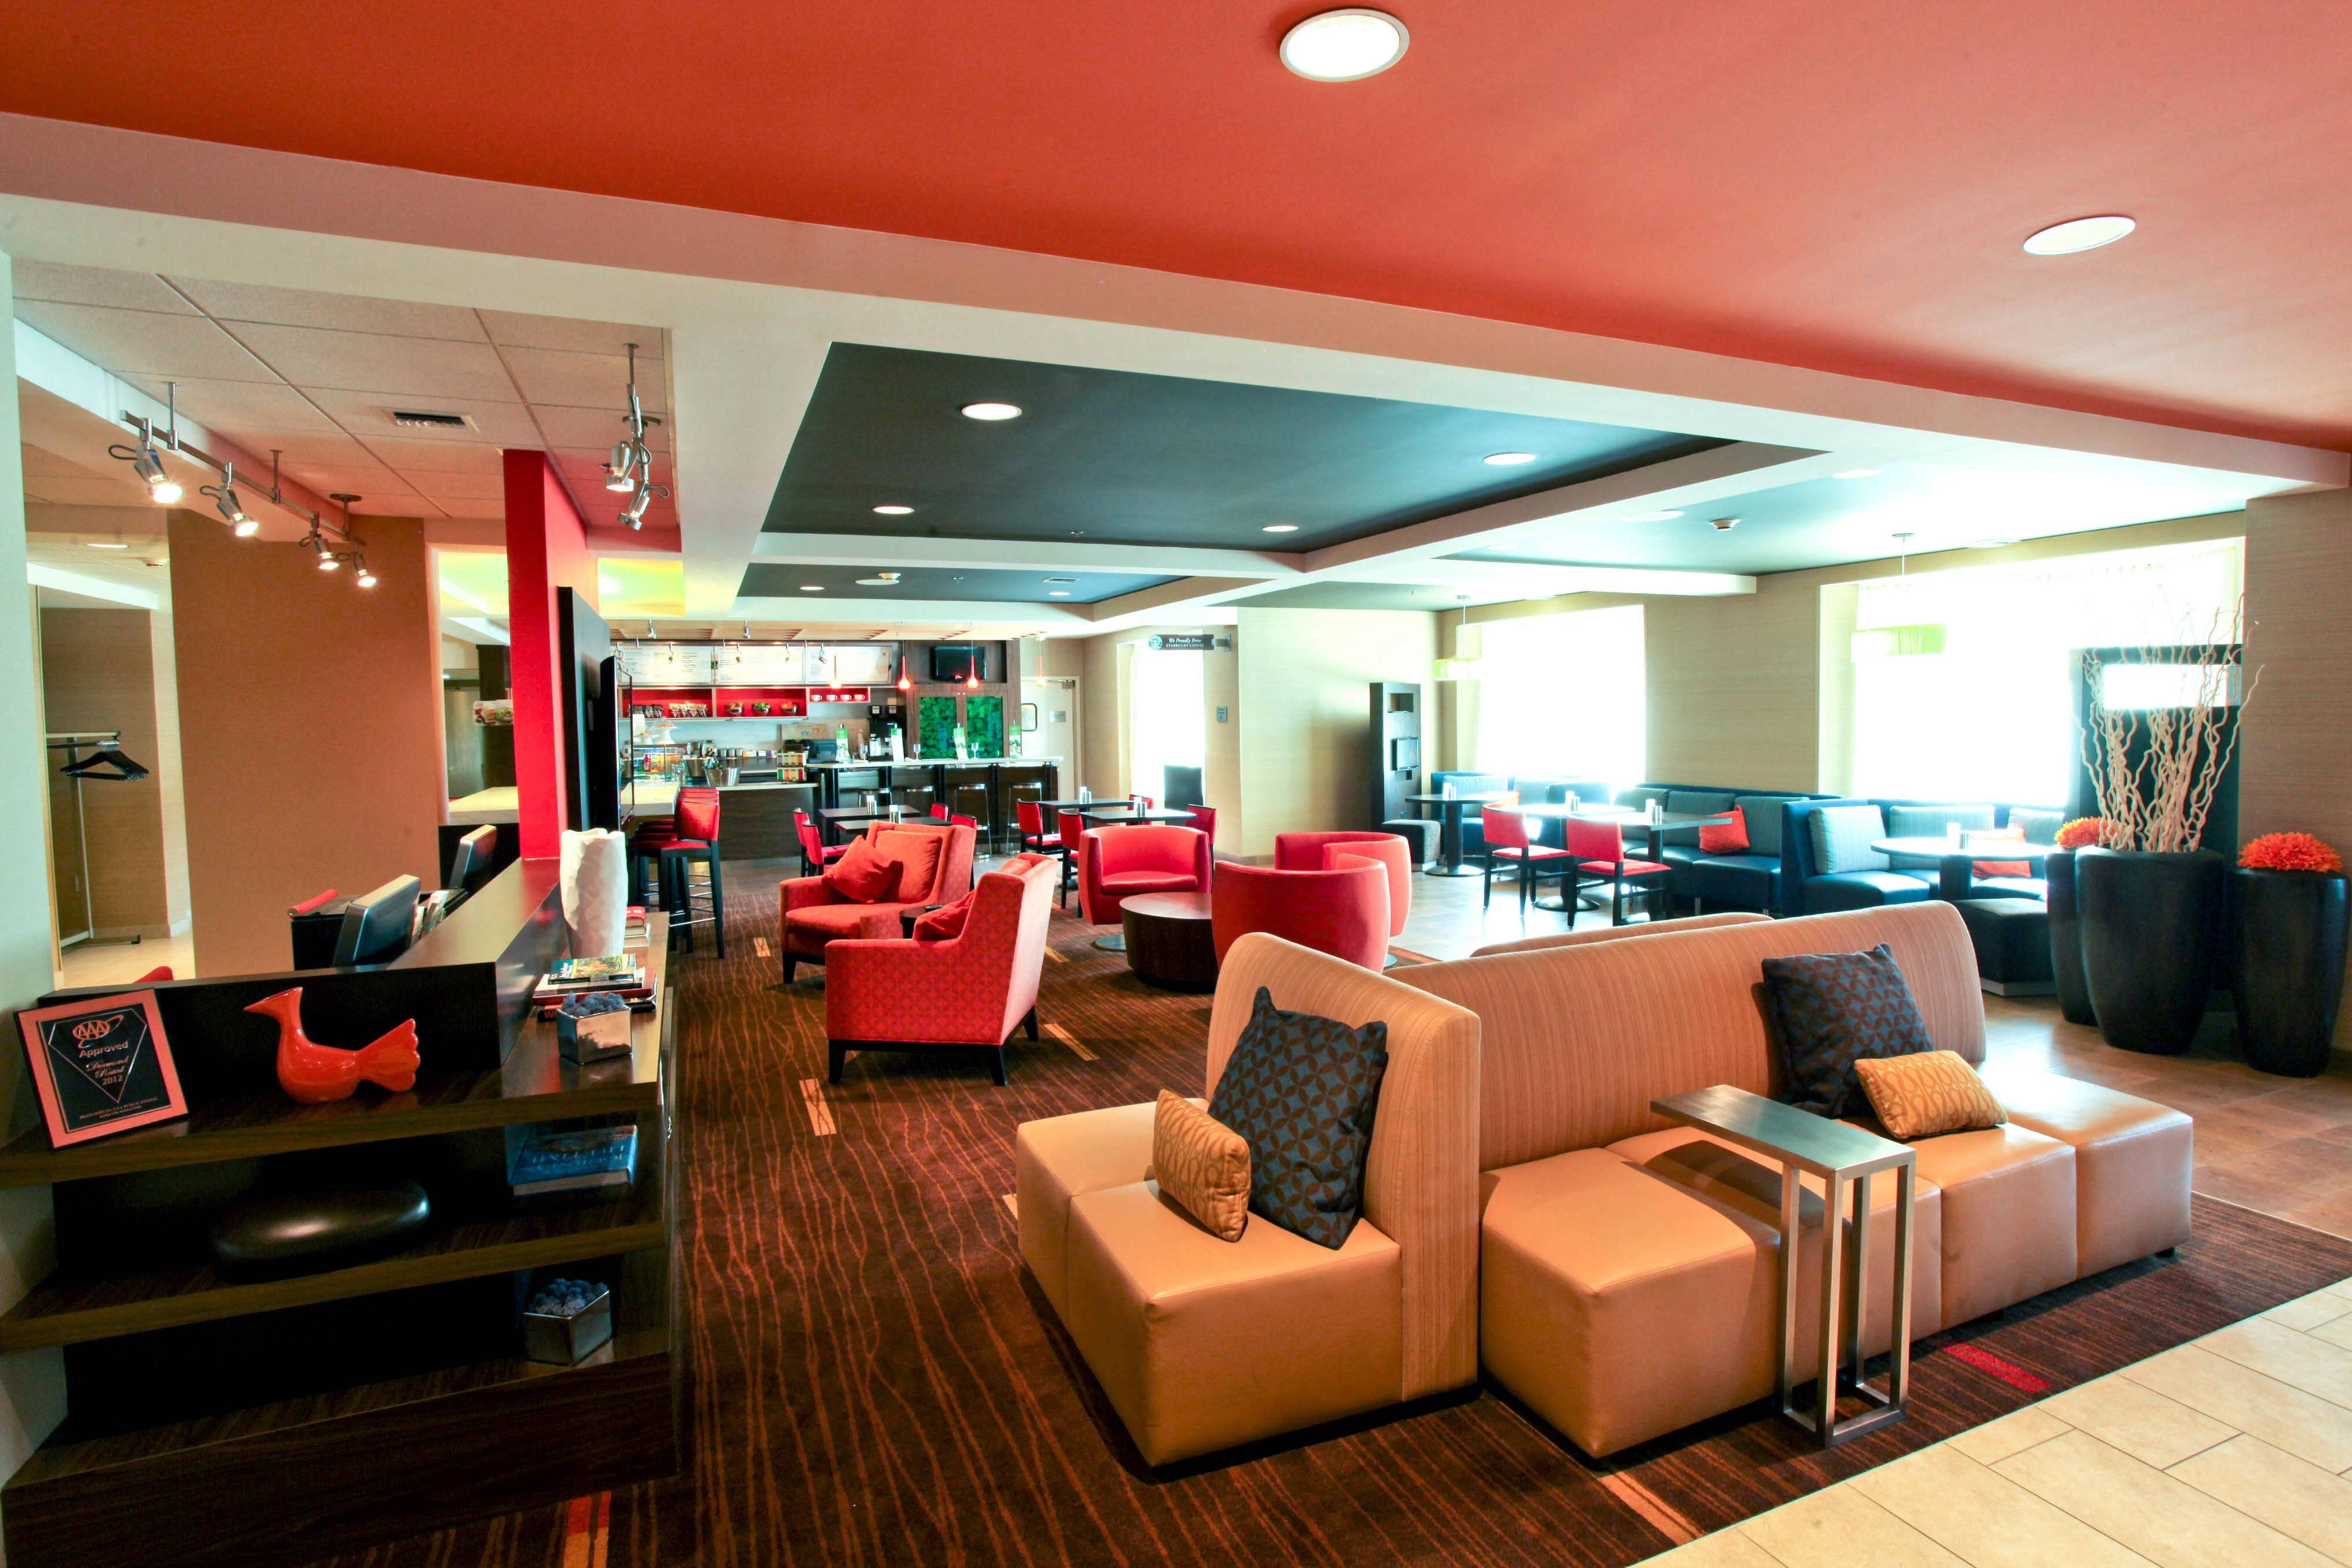 Hotel Lobby Seating & Public Space